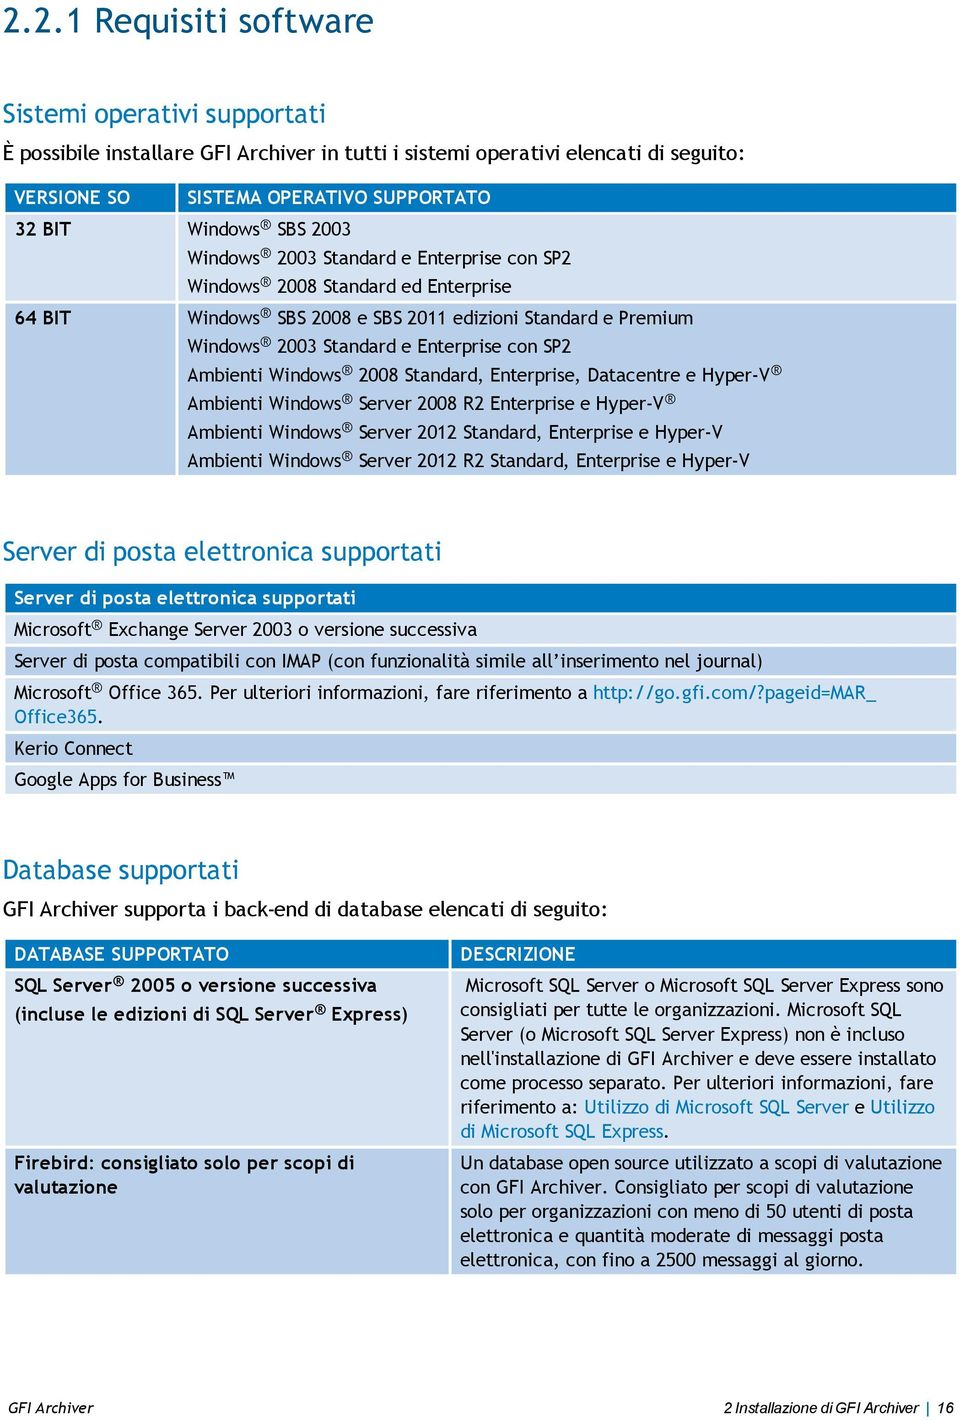 Windows 2008 Standard, Enterprise, Datacentre e Hyper-V Ambienti Windows Server 2008 R2 Enterprise e Hyper-V Ambienti Windows Server 2012 Standard, Enterprise e Hyper-V Ambienti Windows Server 2012